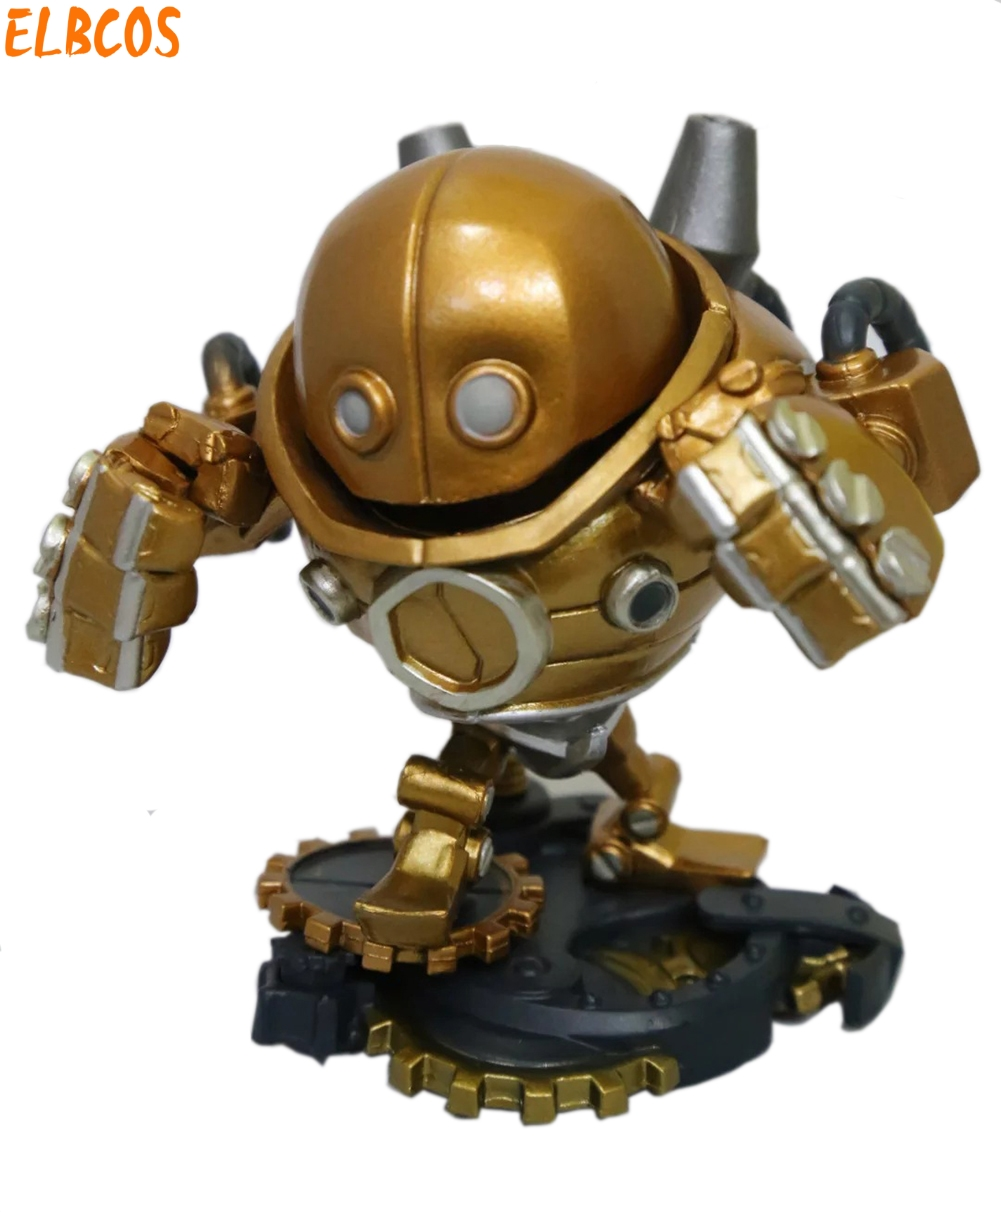 Cosplay LOL Blitzcrank the Great Steam Golem 10cm/3.9'' Q Version PVC Garage Kit Action Figures Toys GK Model vocaloid cosplay hatsune miku q version boxed pvc small gk garage kit action figures model toys 4pcs set